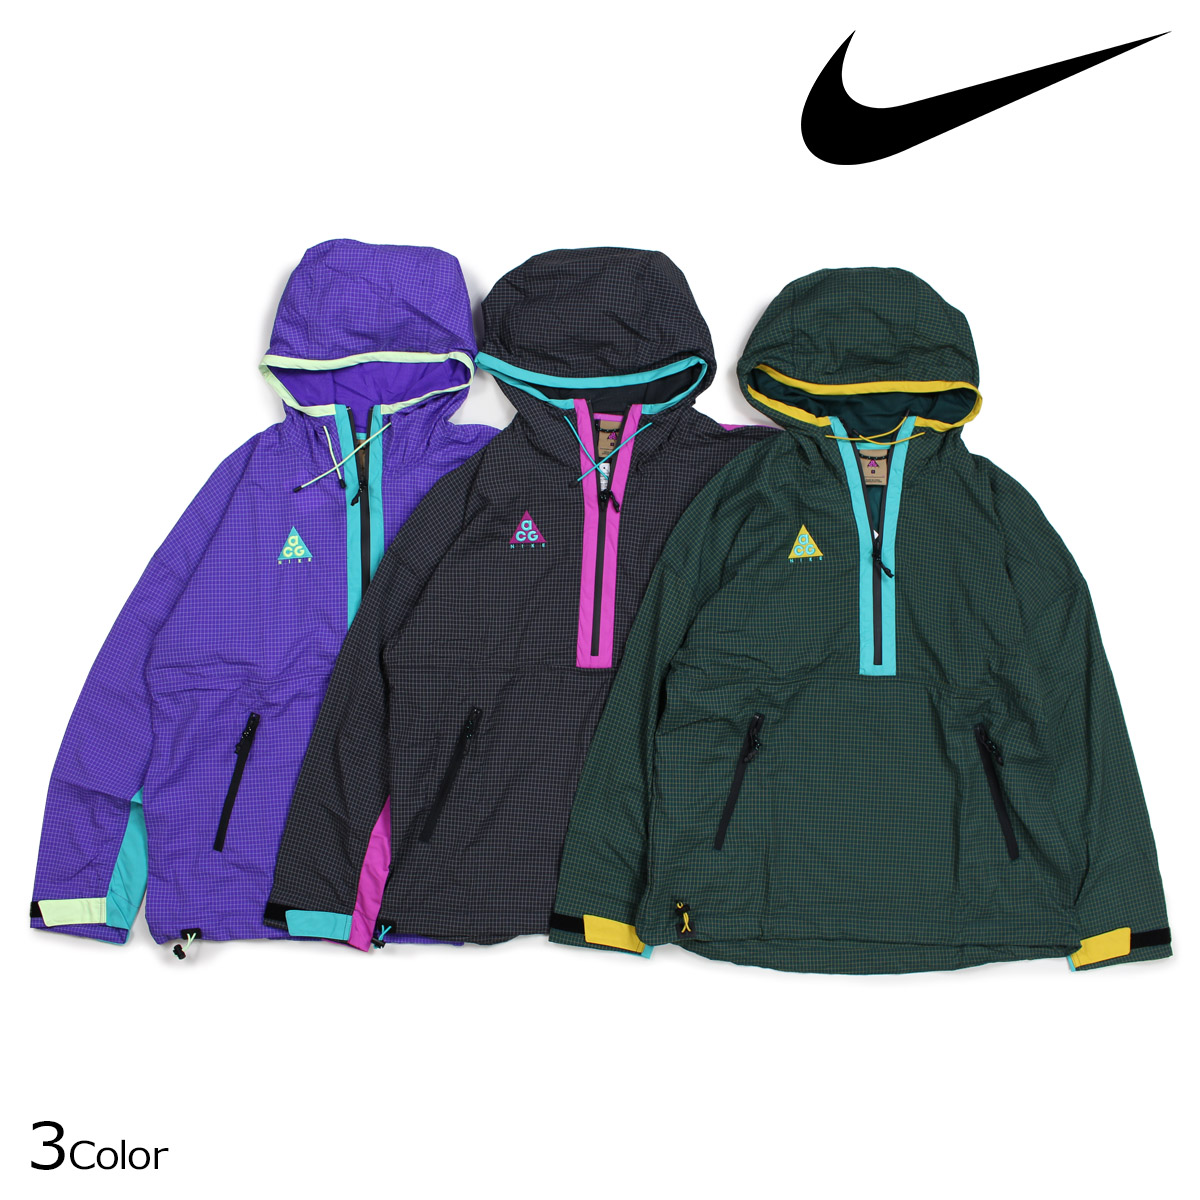 NIKE Nike Woo jacket men nylon jacket ACG WOVEN HOOD ANORAK JACKET 931907   9 25 Shinnyu load  865ab8b73772